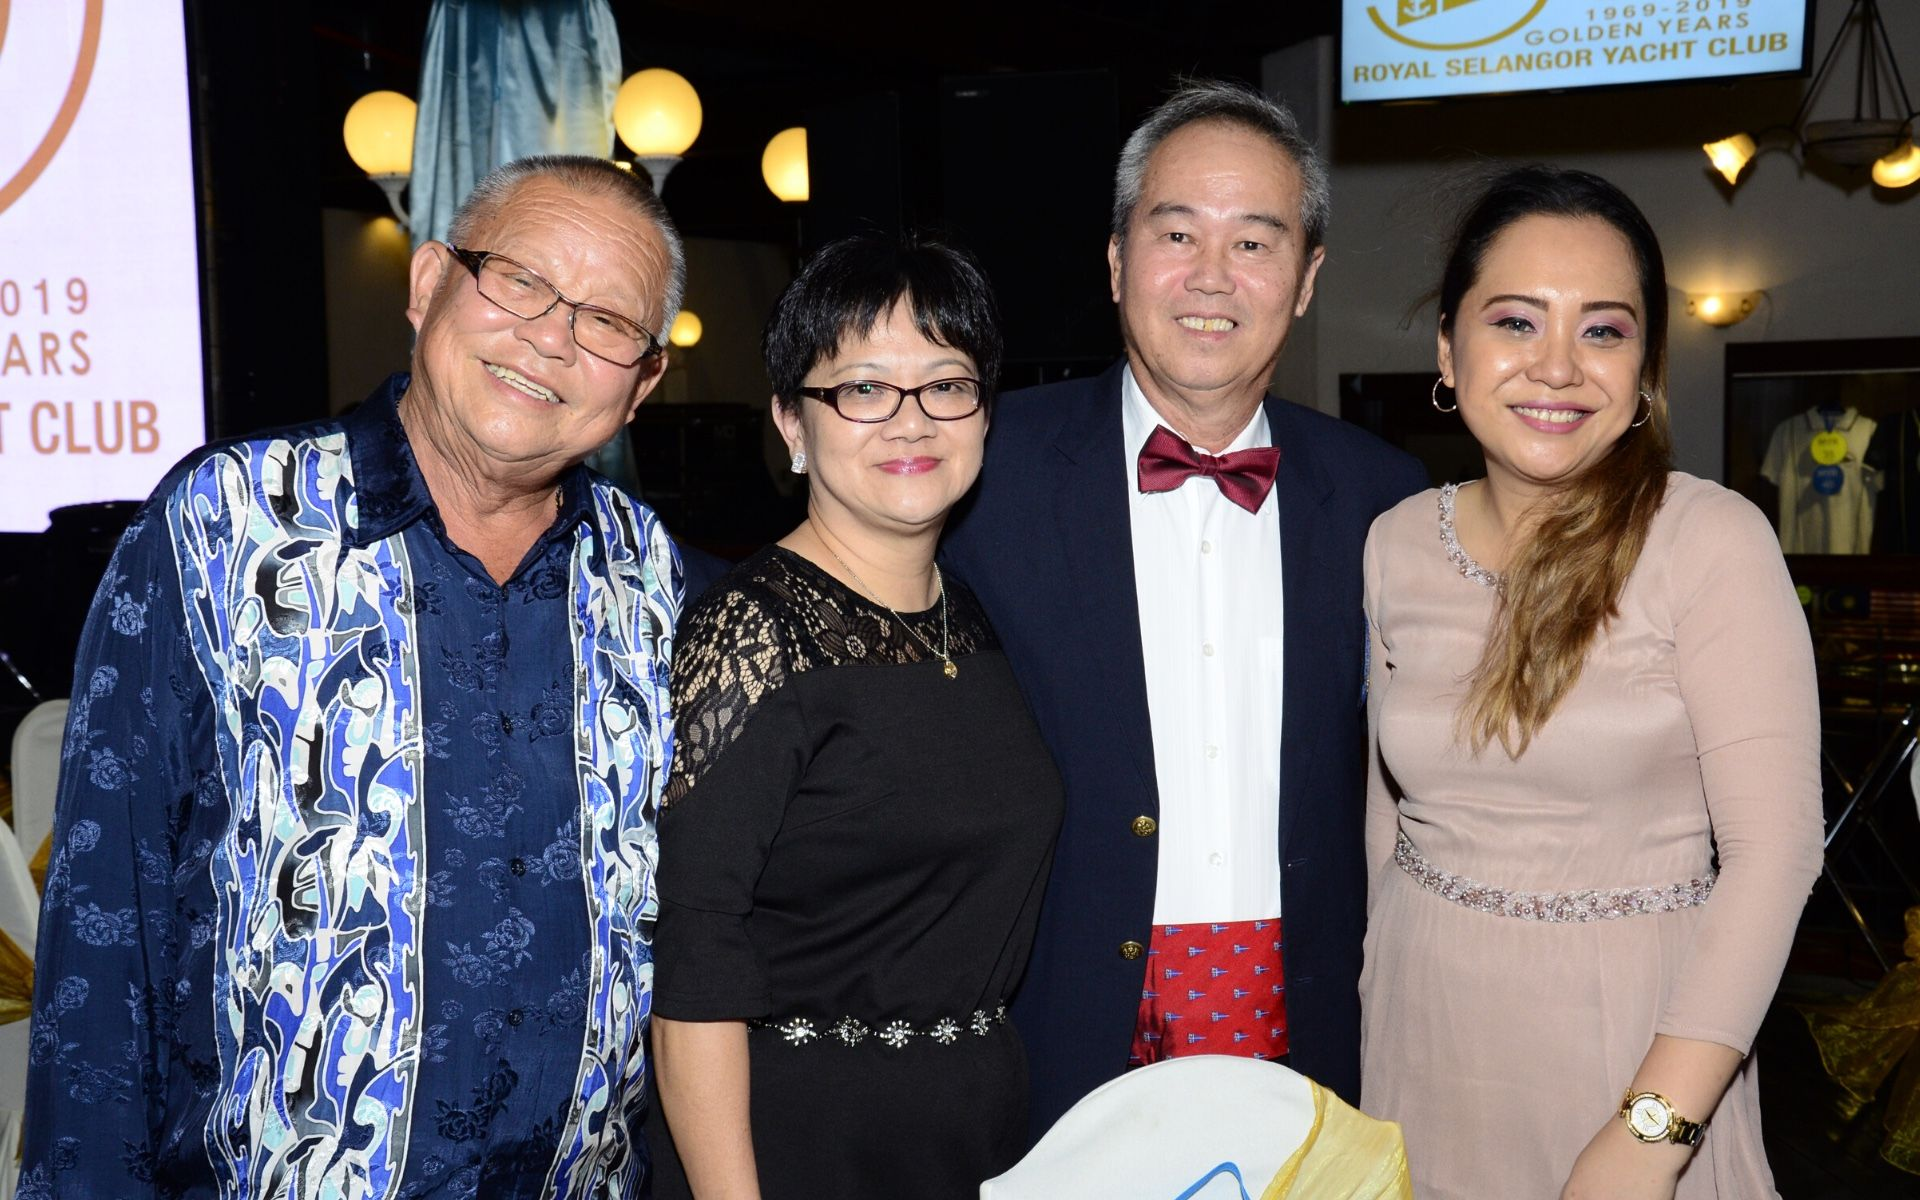 Cheou Yoon Kuan, Christina Say, James Wong and Sylvia Tremas